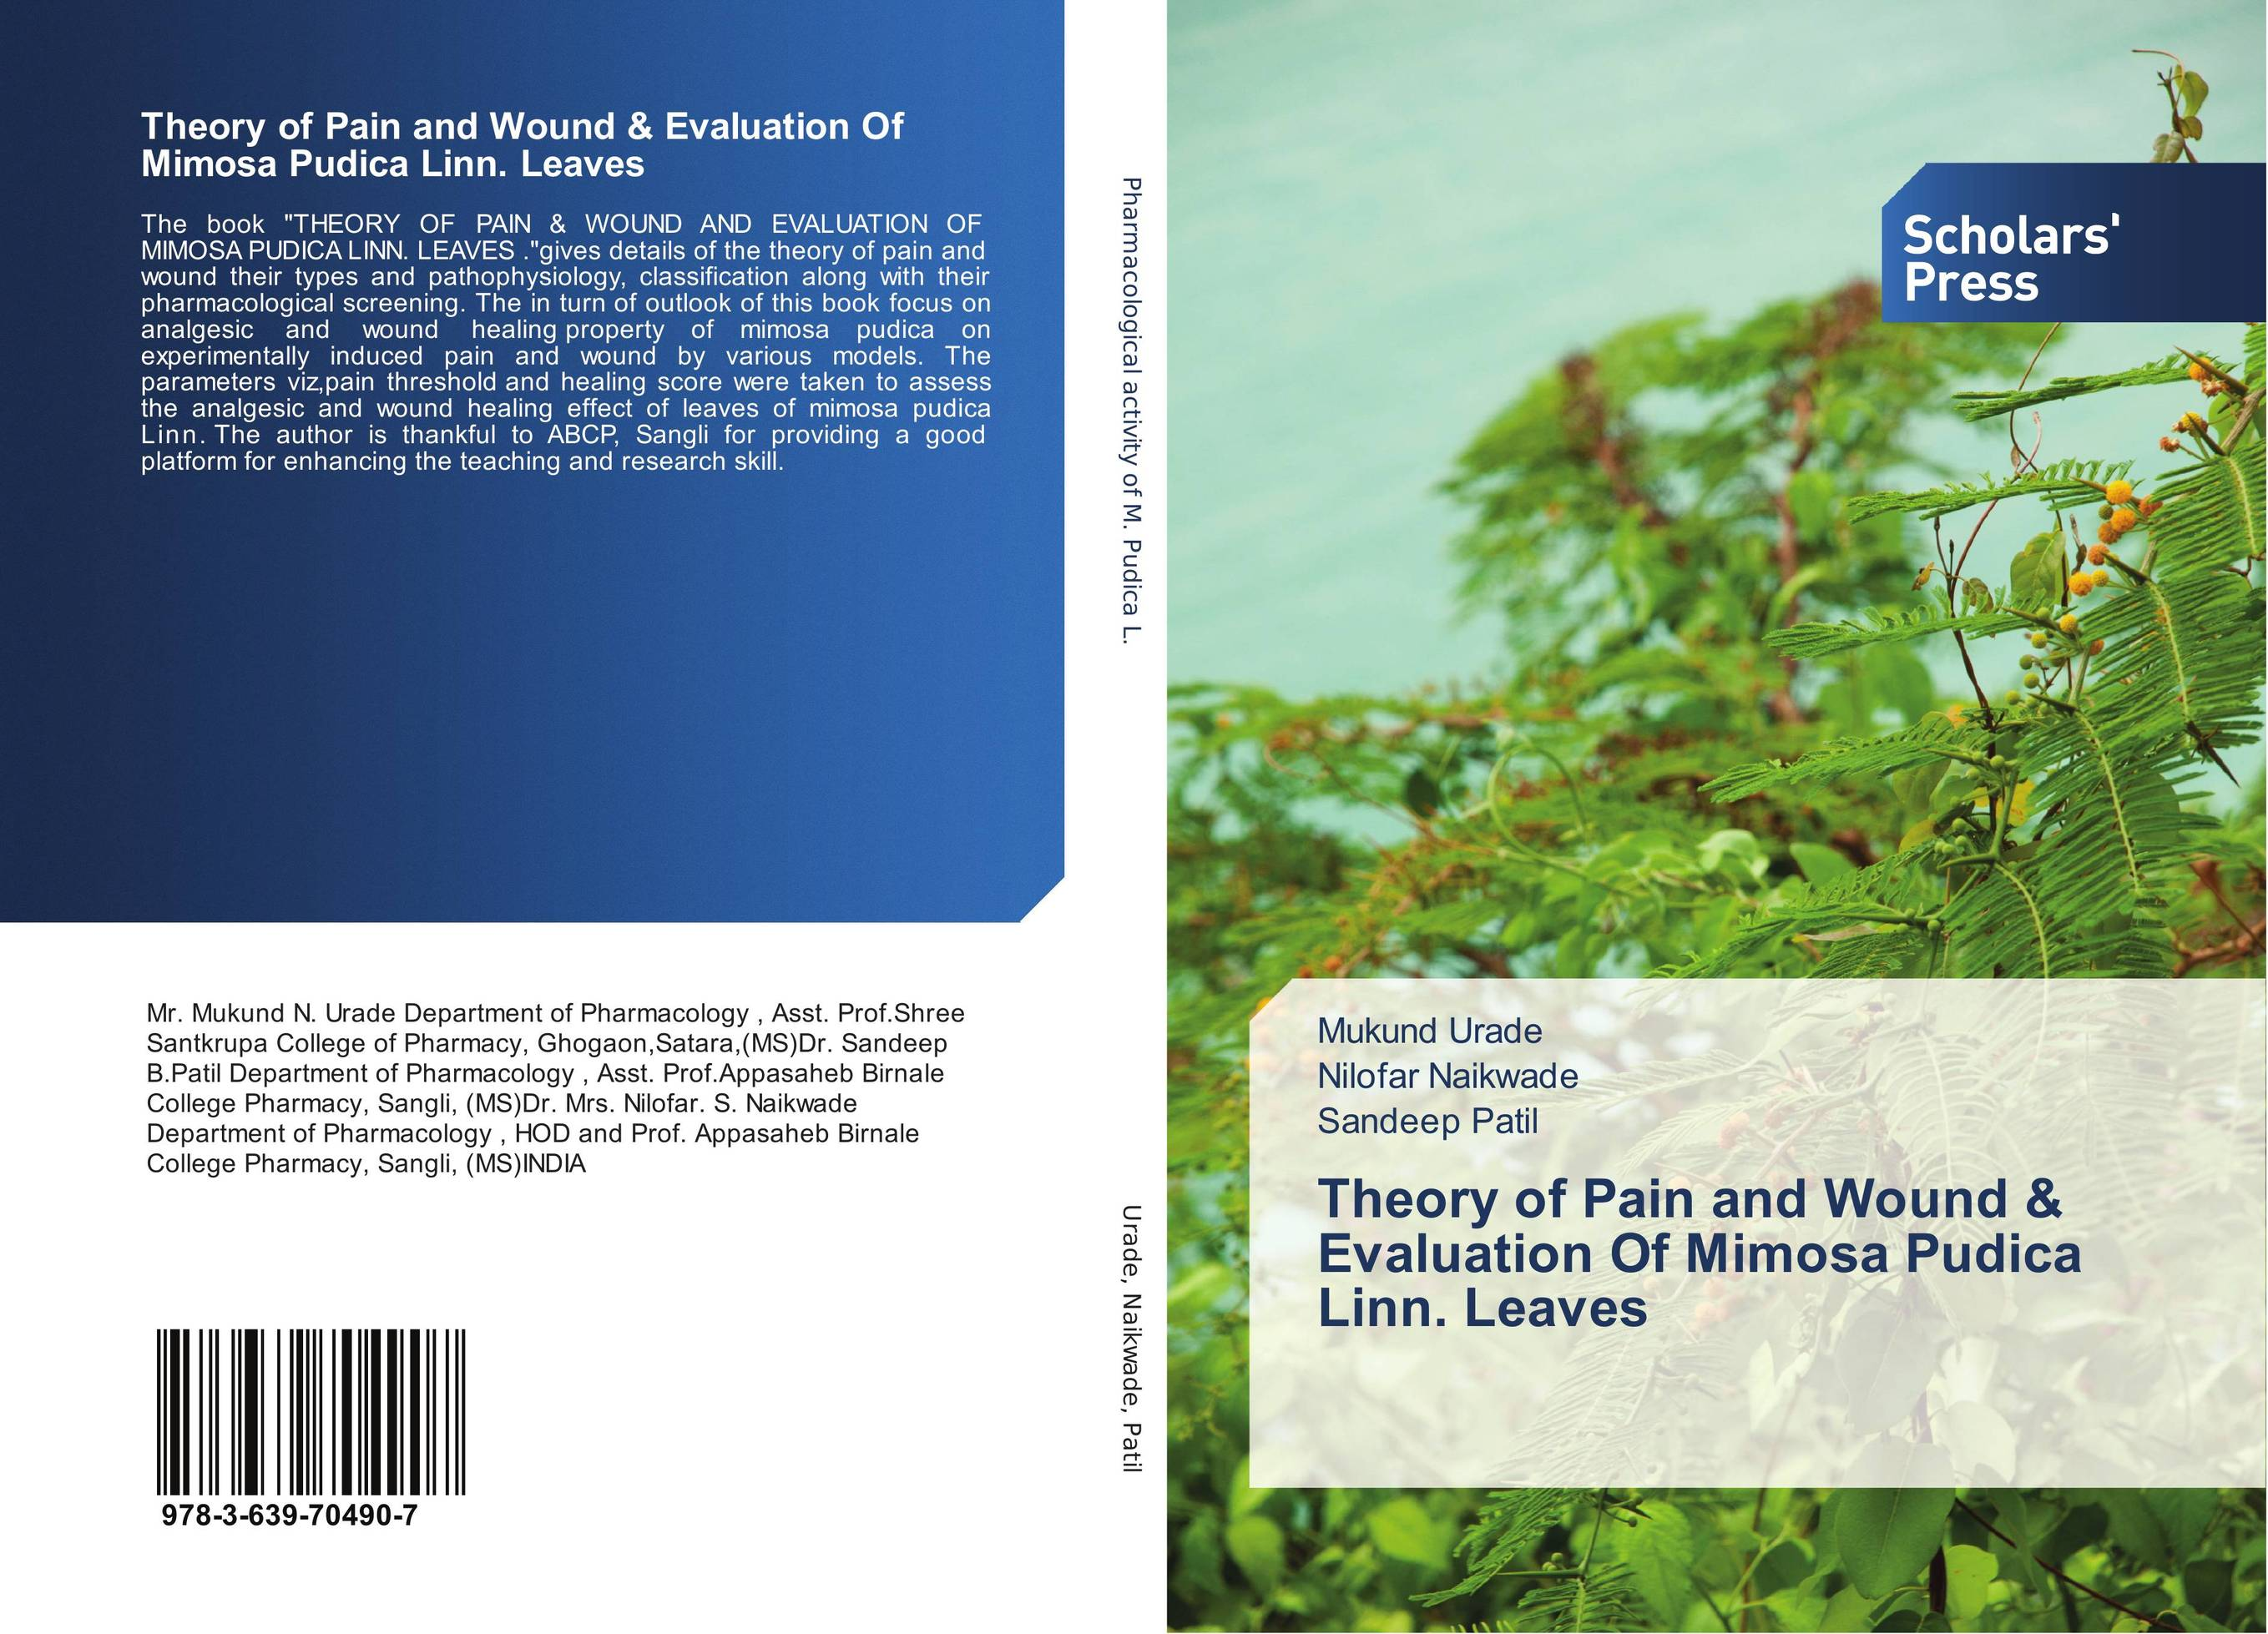 Theory of Pain and Wound & Evaluation Of Mimosa Pudica Linn. Leaves